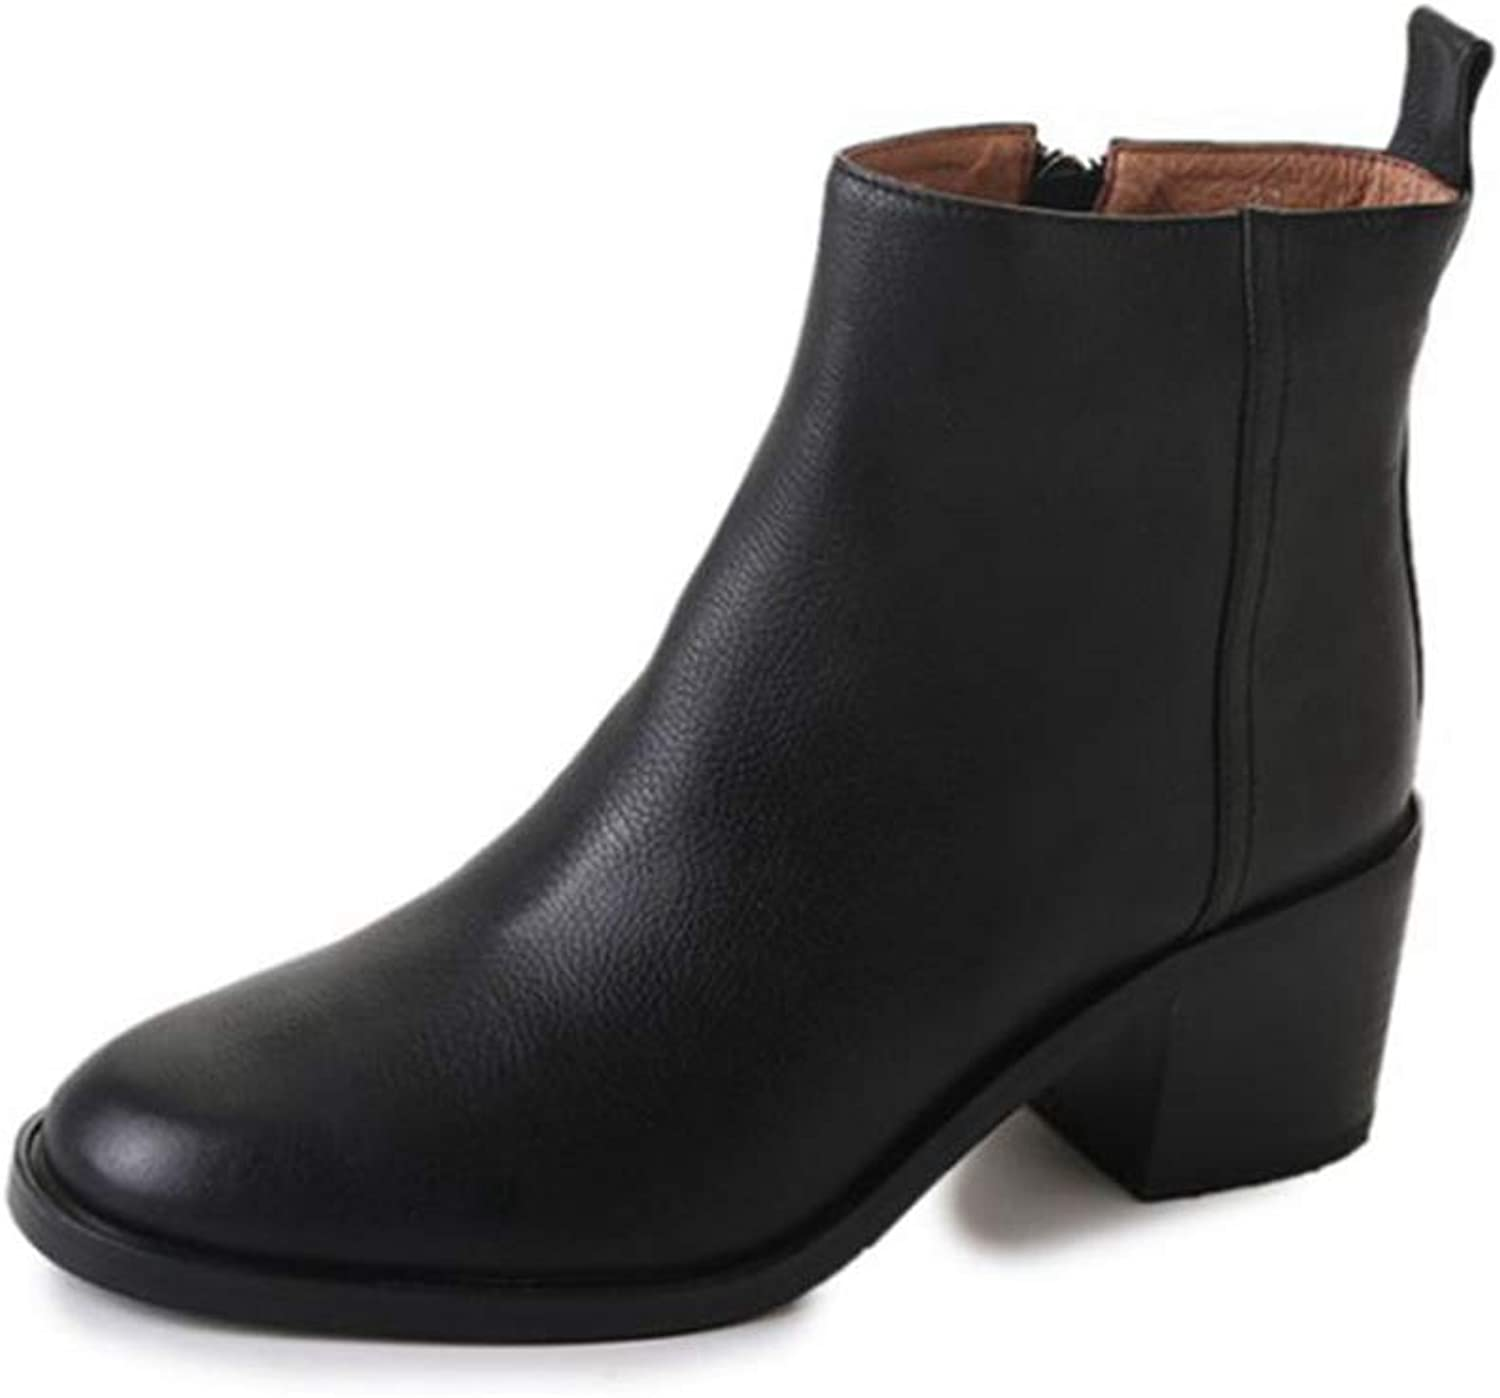 T-JULY Winter Boots Ankle Boots Women Black Round Toe Thick Heel Zipper Leather Girls shoes